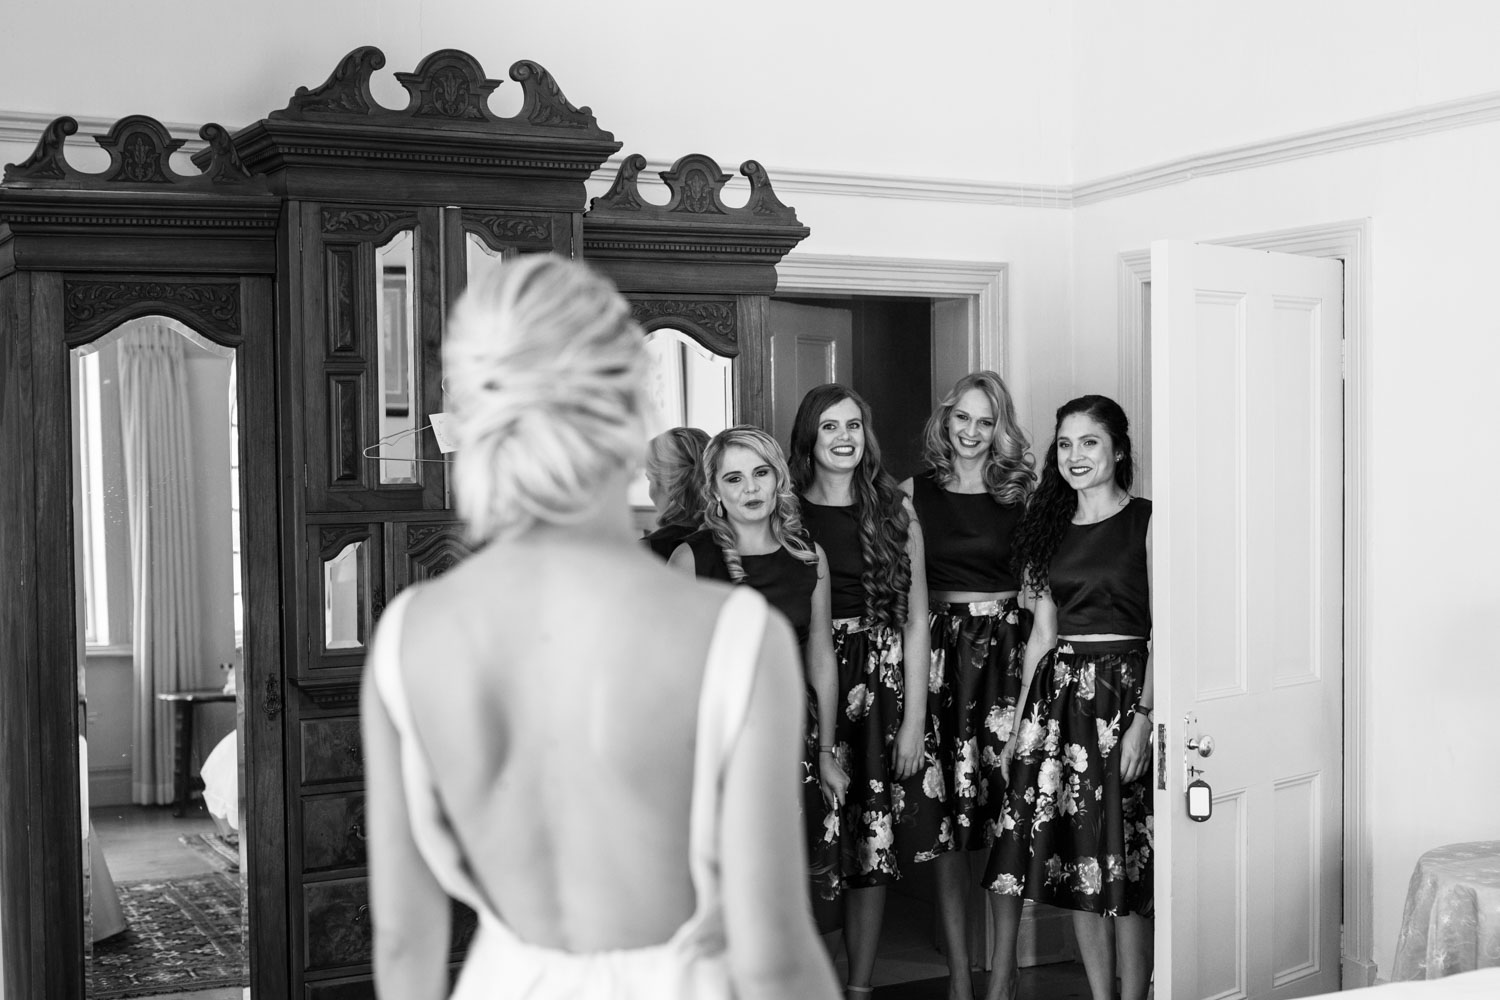 Bridesmaids Reveal Emotional Moment When Bridesmaids See Bride For The First Time